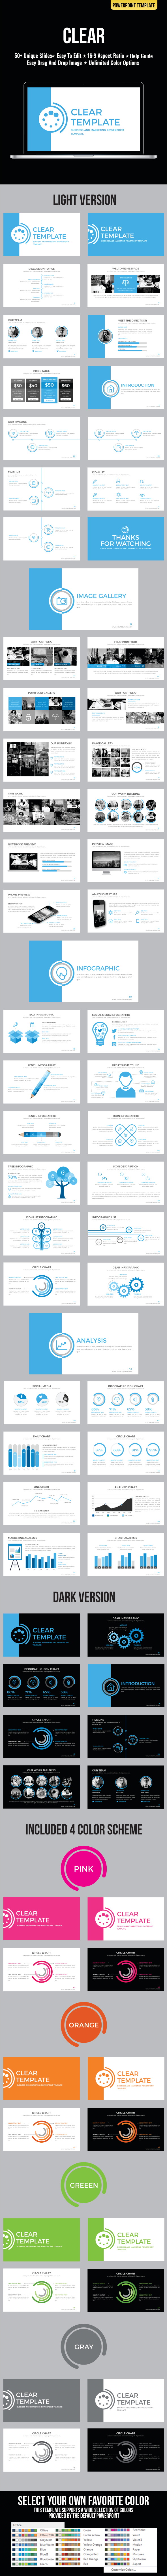 Clear Powerpoint Template - Business PowerPoint Templates